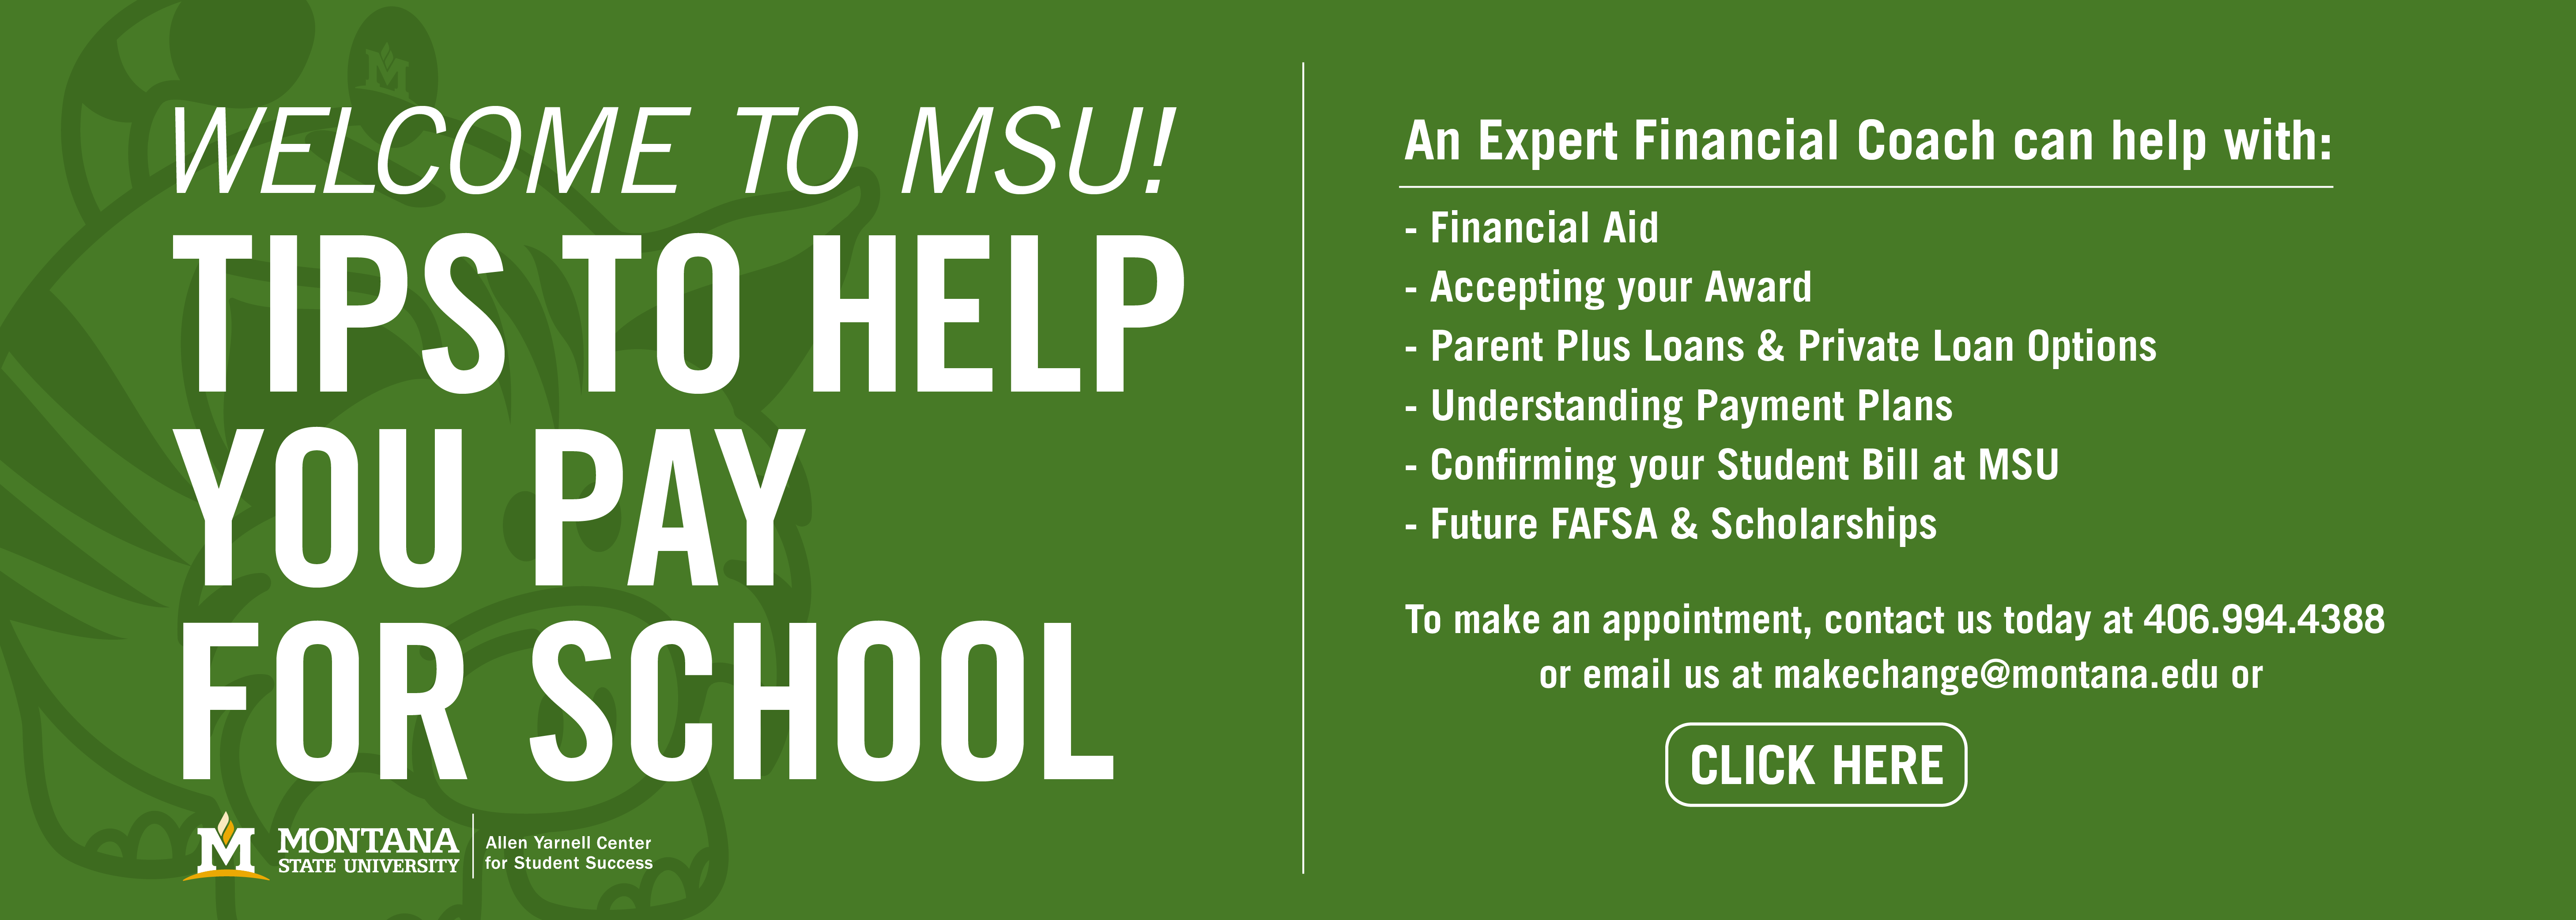 Welcome to MSU! Tips to help you pay for school.  An expert financial coach can help with: financial aid, accepting your award, parents plus loans & private option loan...